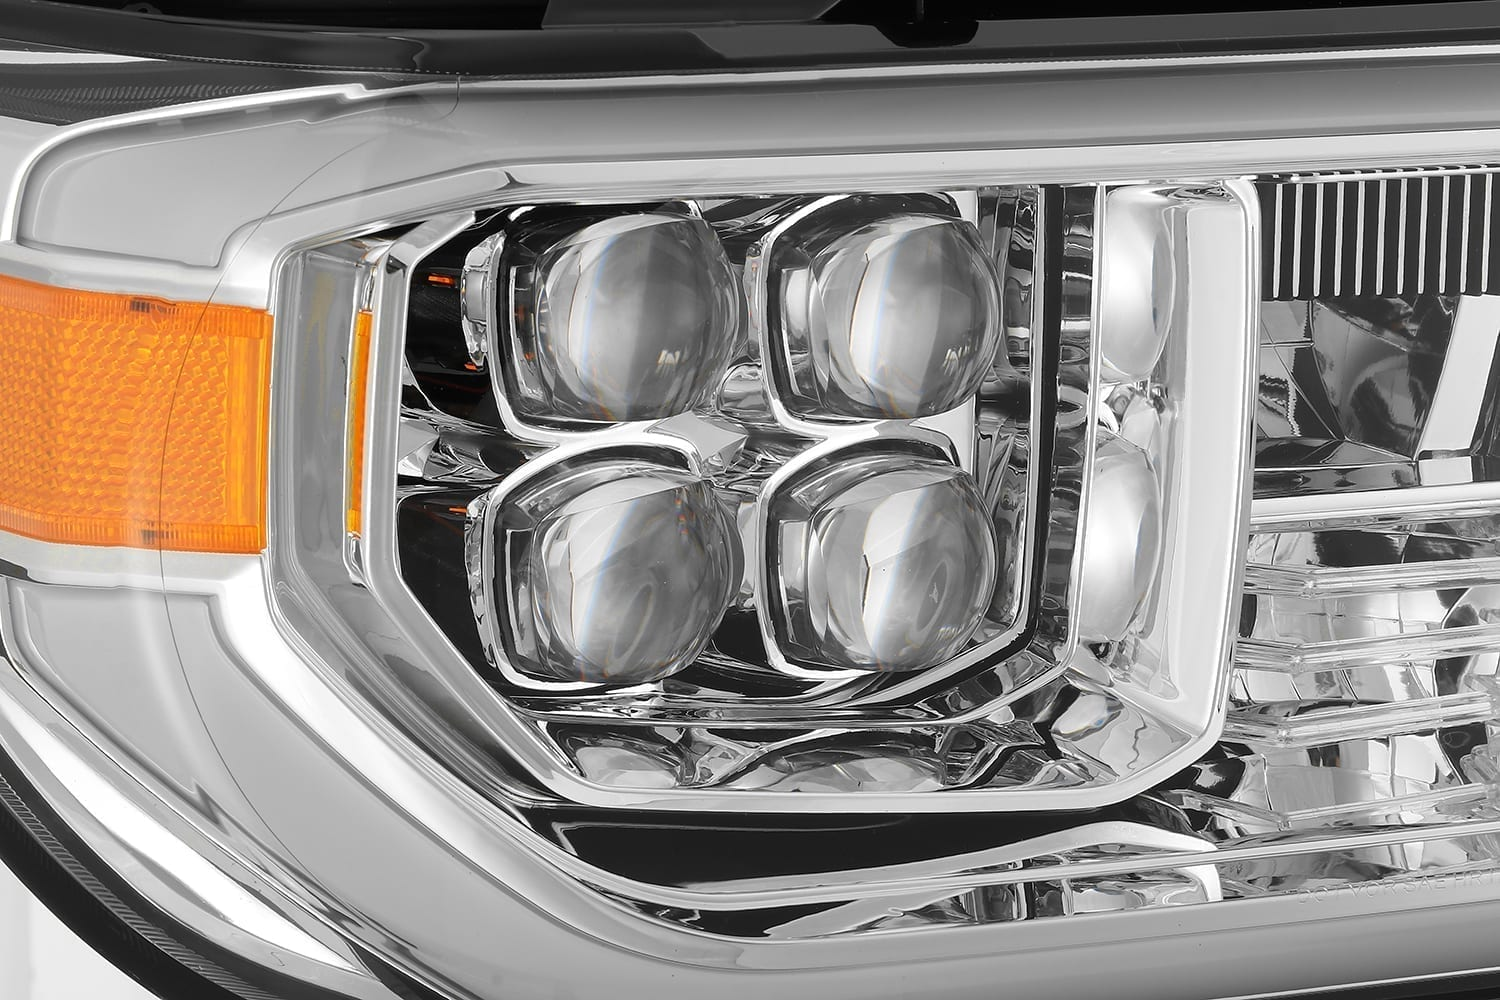 AlphaRex 07-13 Toyota Tundra/08-13 Toyota Sequoia NOVA-Series LED Projector Headlights Chrome (Without Level Adjuster)